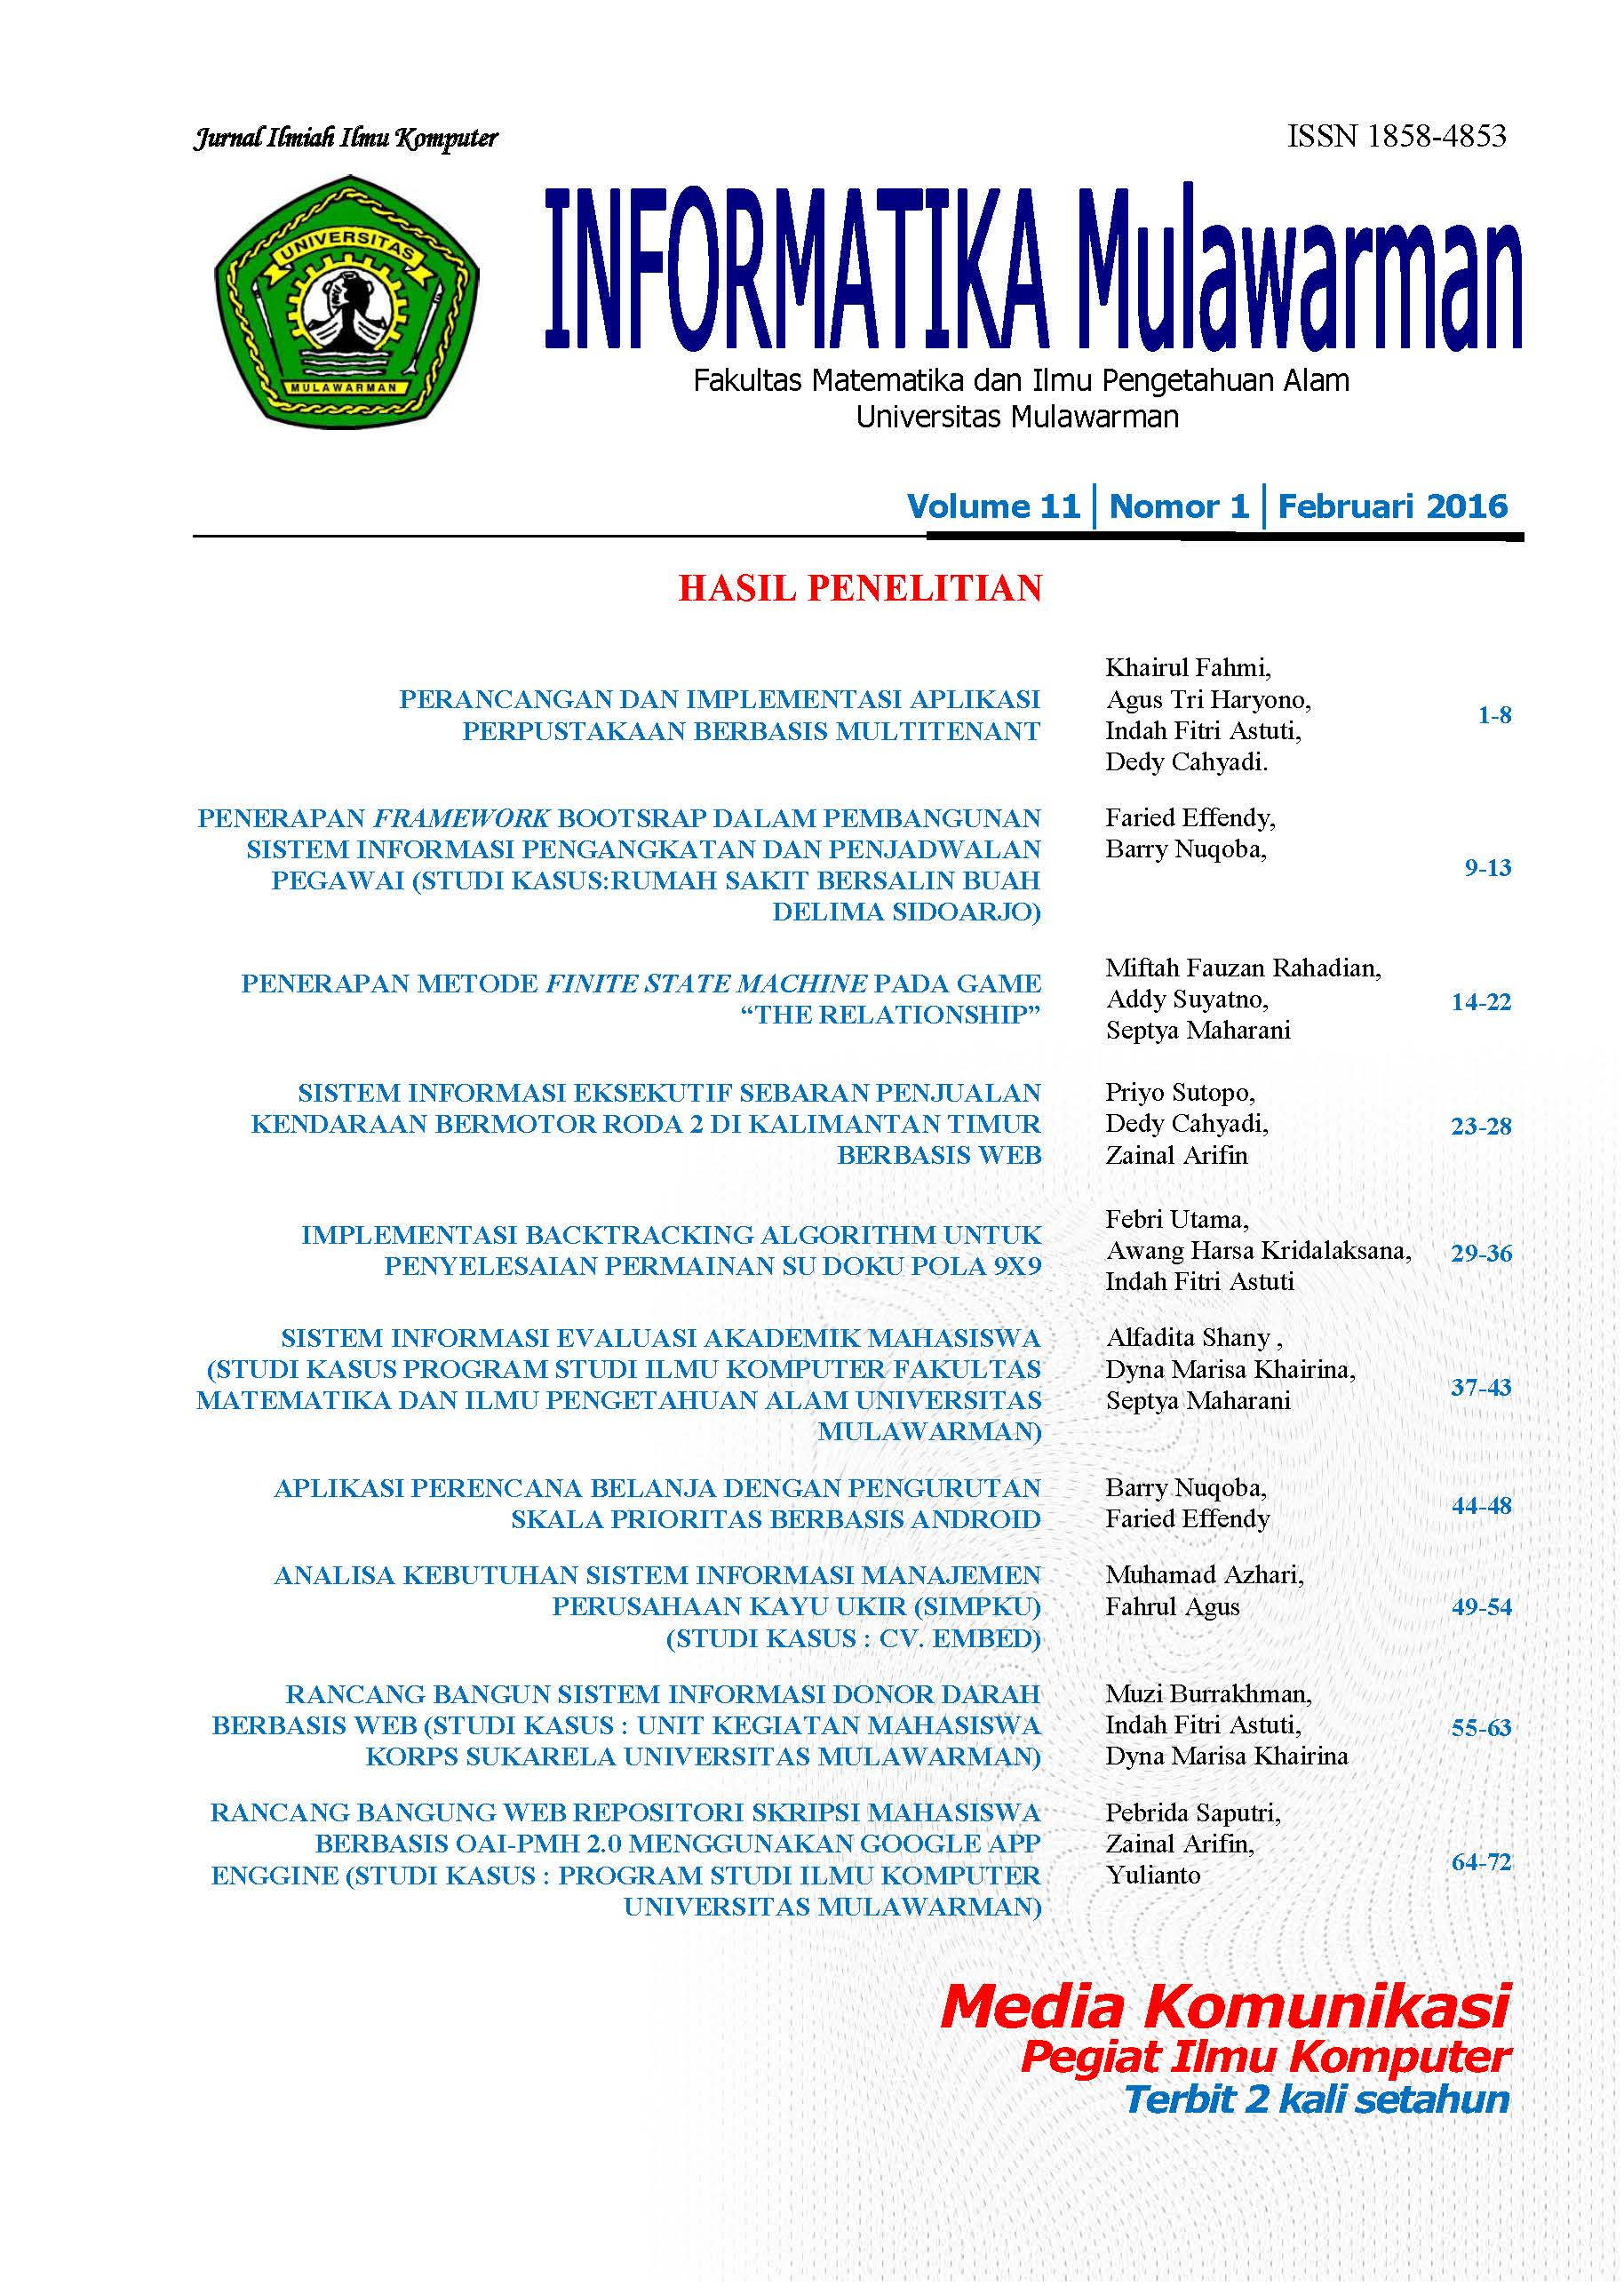 Jurnal Informatika Mulawarman (JIM) Vol 11 No 1 Februari 2016